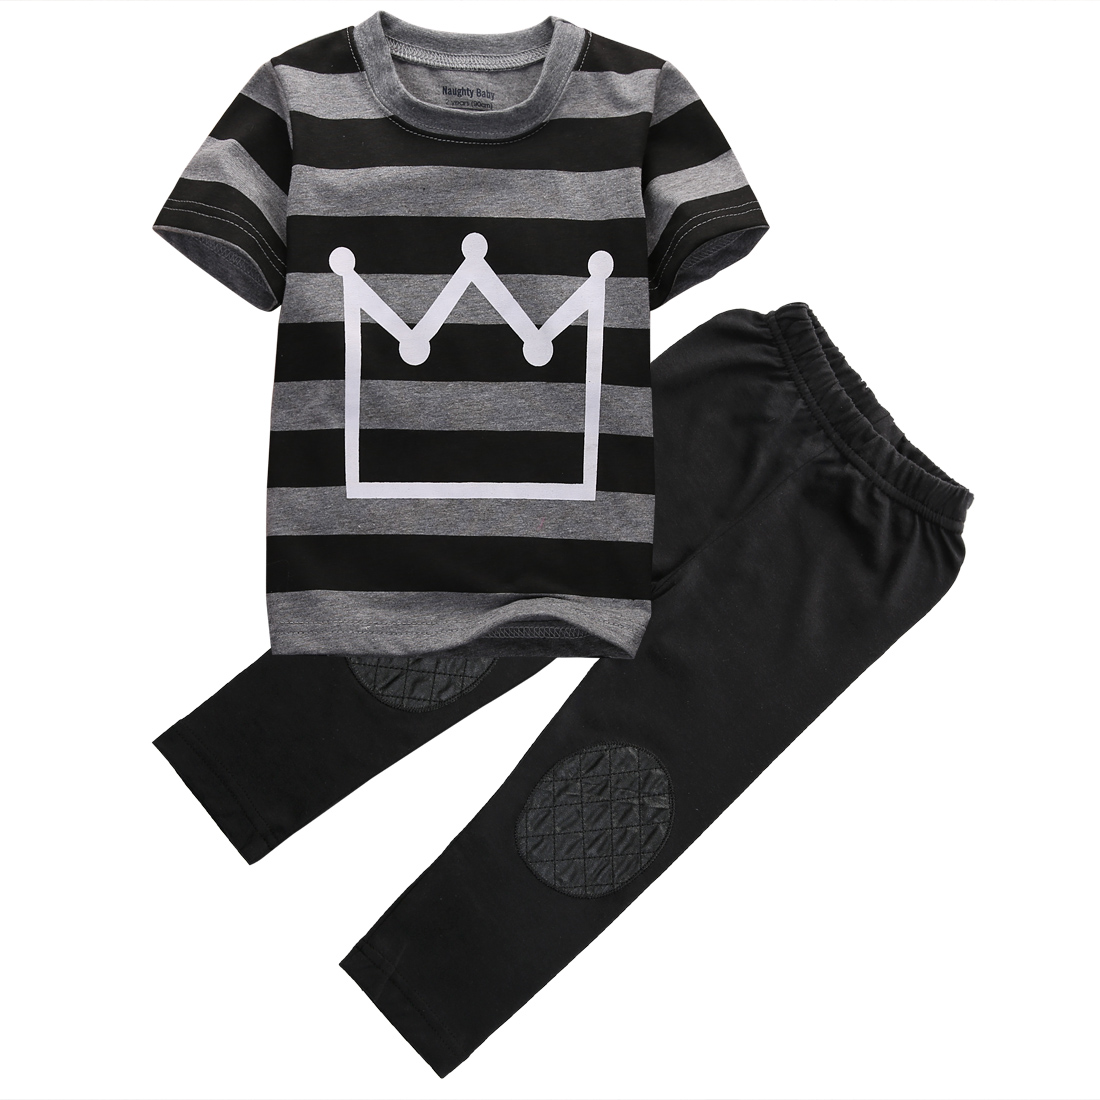 Pudcoco Fast Shipping Baby Boys Clothes New Kids Boy Crown Top Shirt Striped T-Shirt and Pant 2pcs Outfit Children Set image